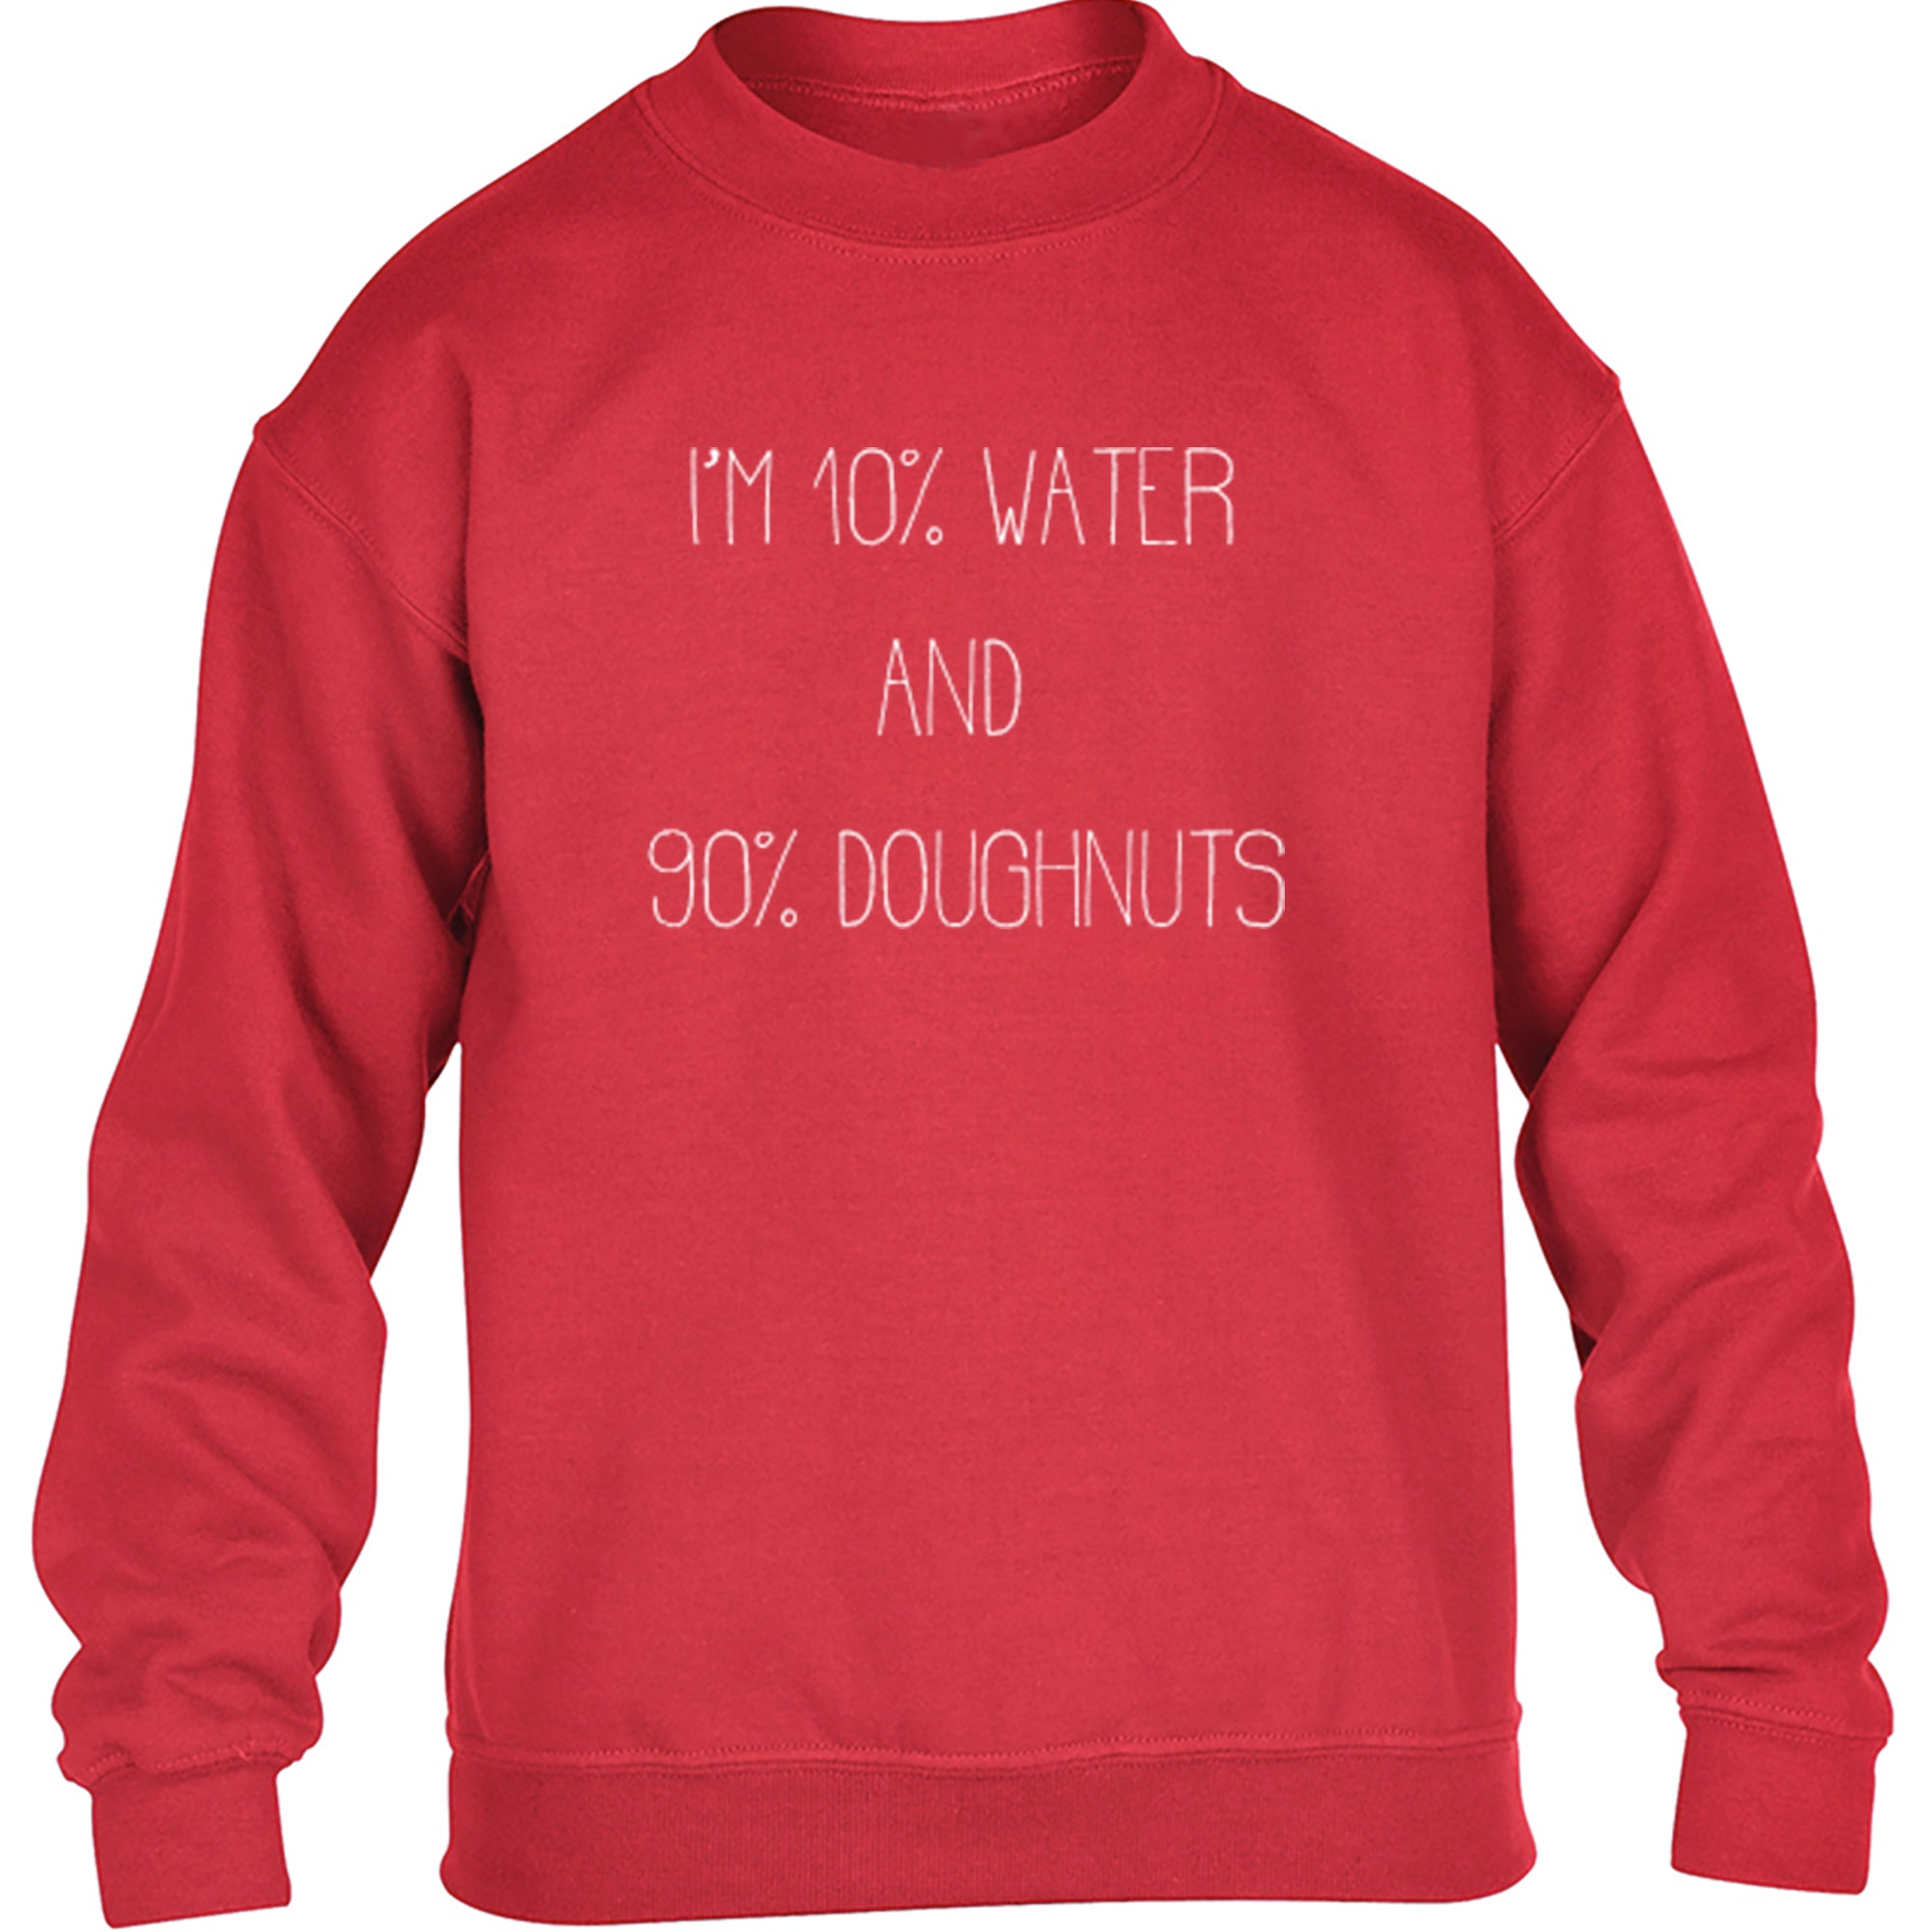 I'm 10% Water And 90% Doughnuts Childrens Ages 3/4-12/14 Unisex Jumper S0485 - Illustrated Identity Ltd.